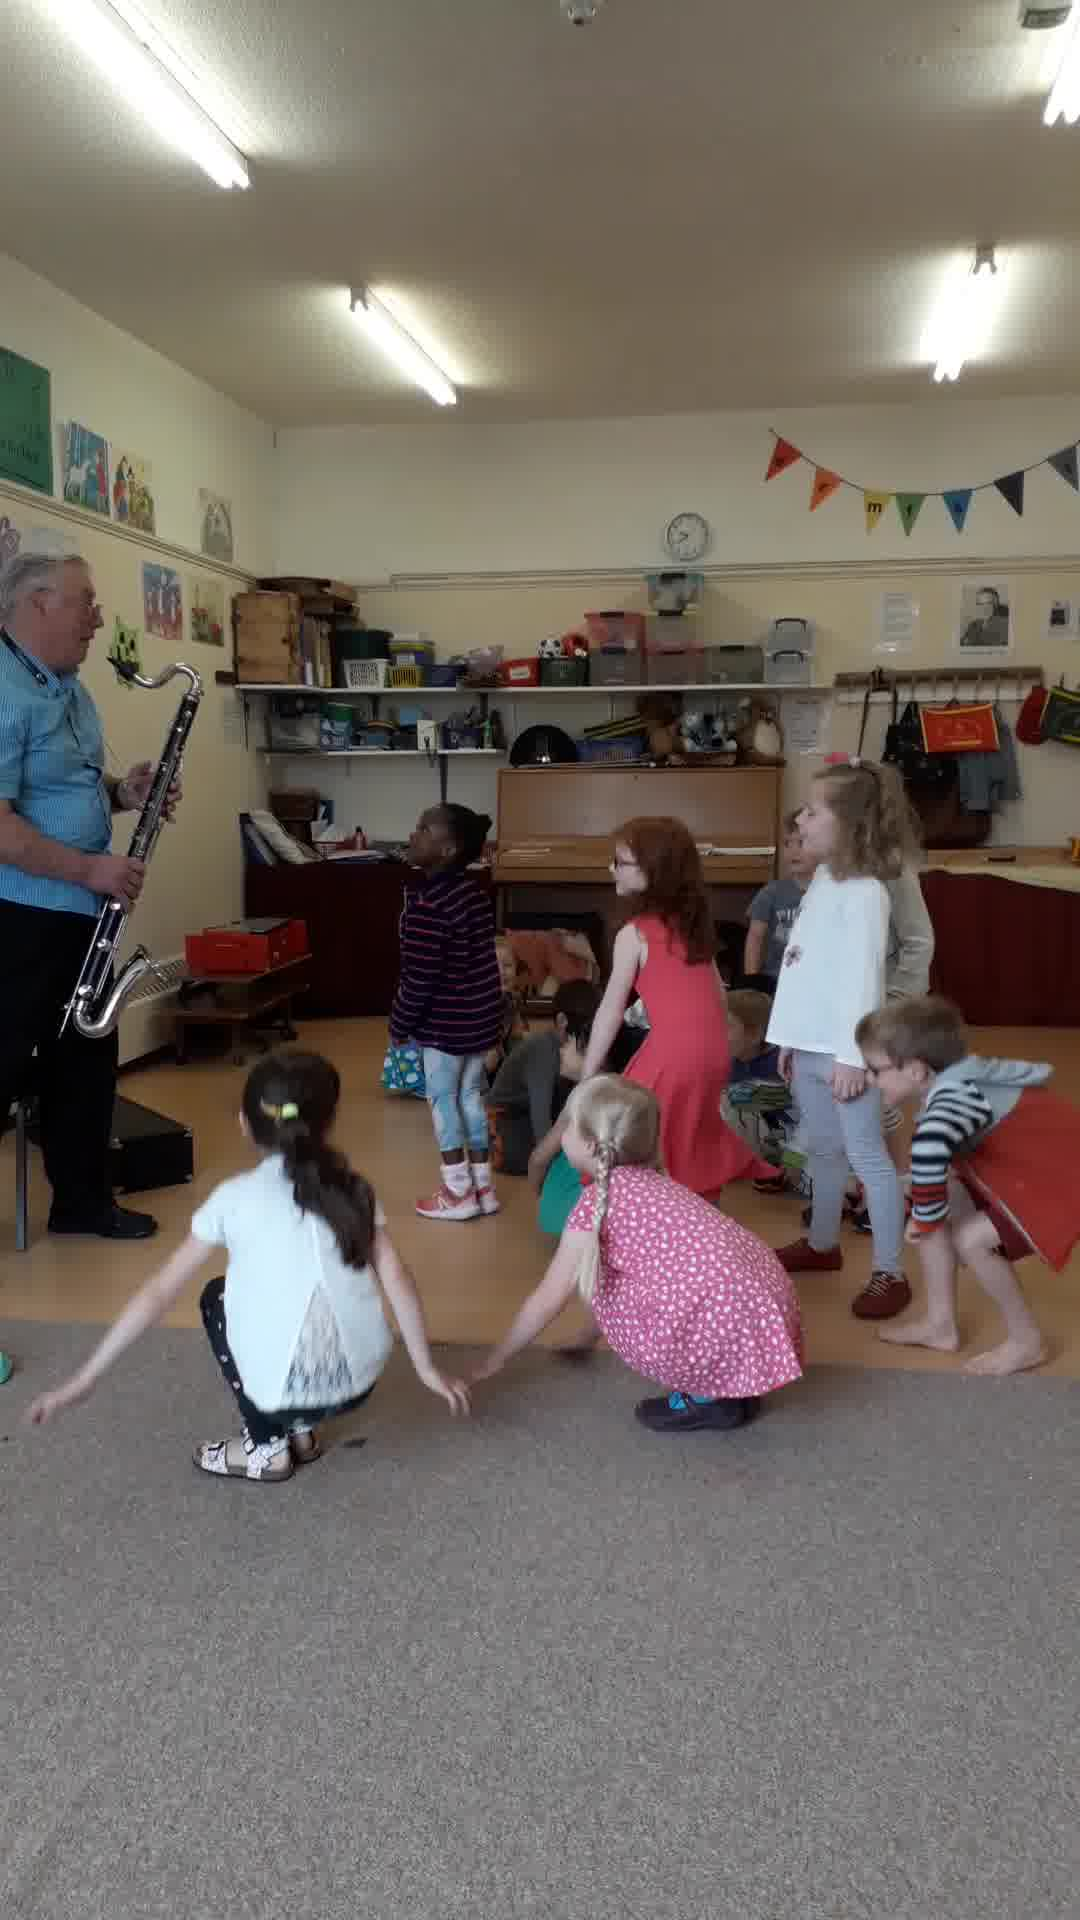 Music (and fun) for youngsters